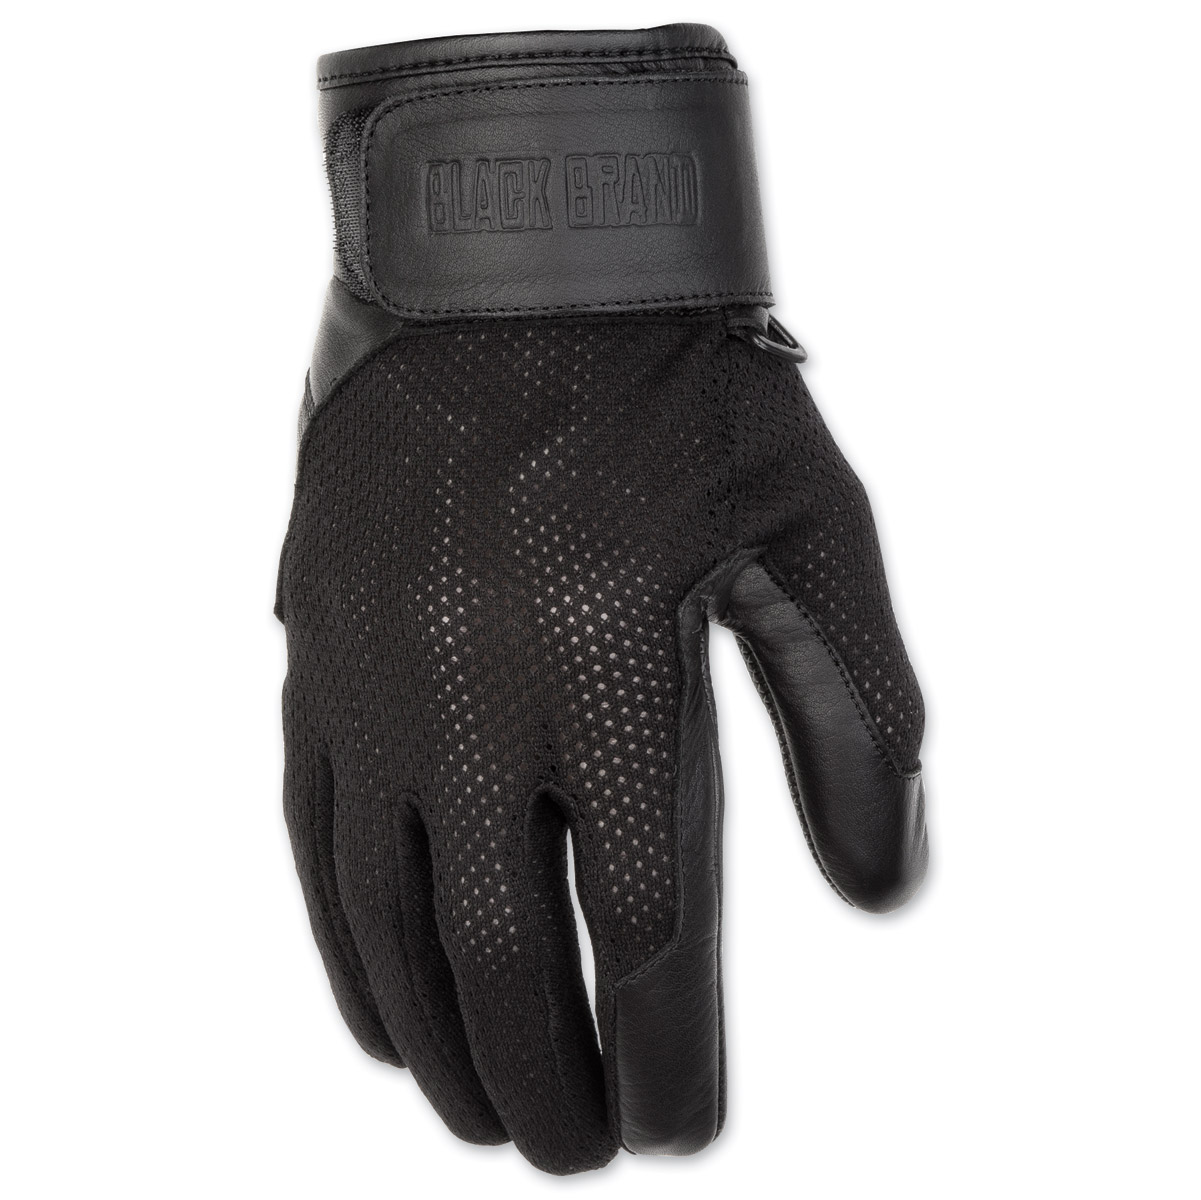 a7ea317eb Related Categories. Related Categories. Gear · Gloves · All Black Brand  Products · Black Brand Gear · Black Brand Gloves. Black Brand Women's Cool  Rider ...